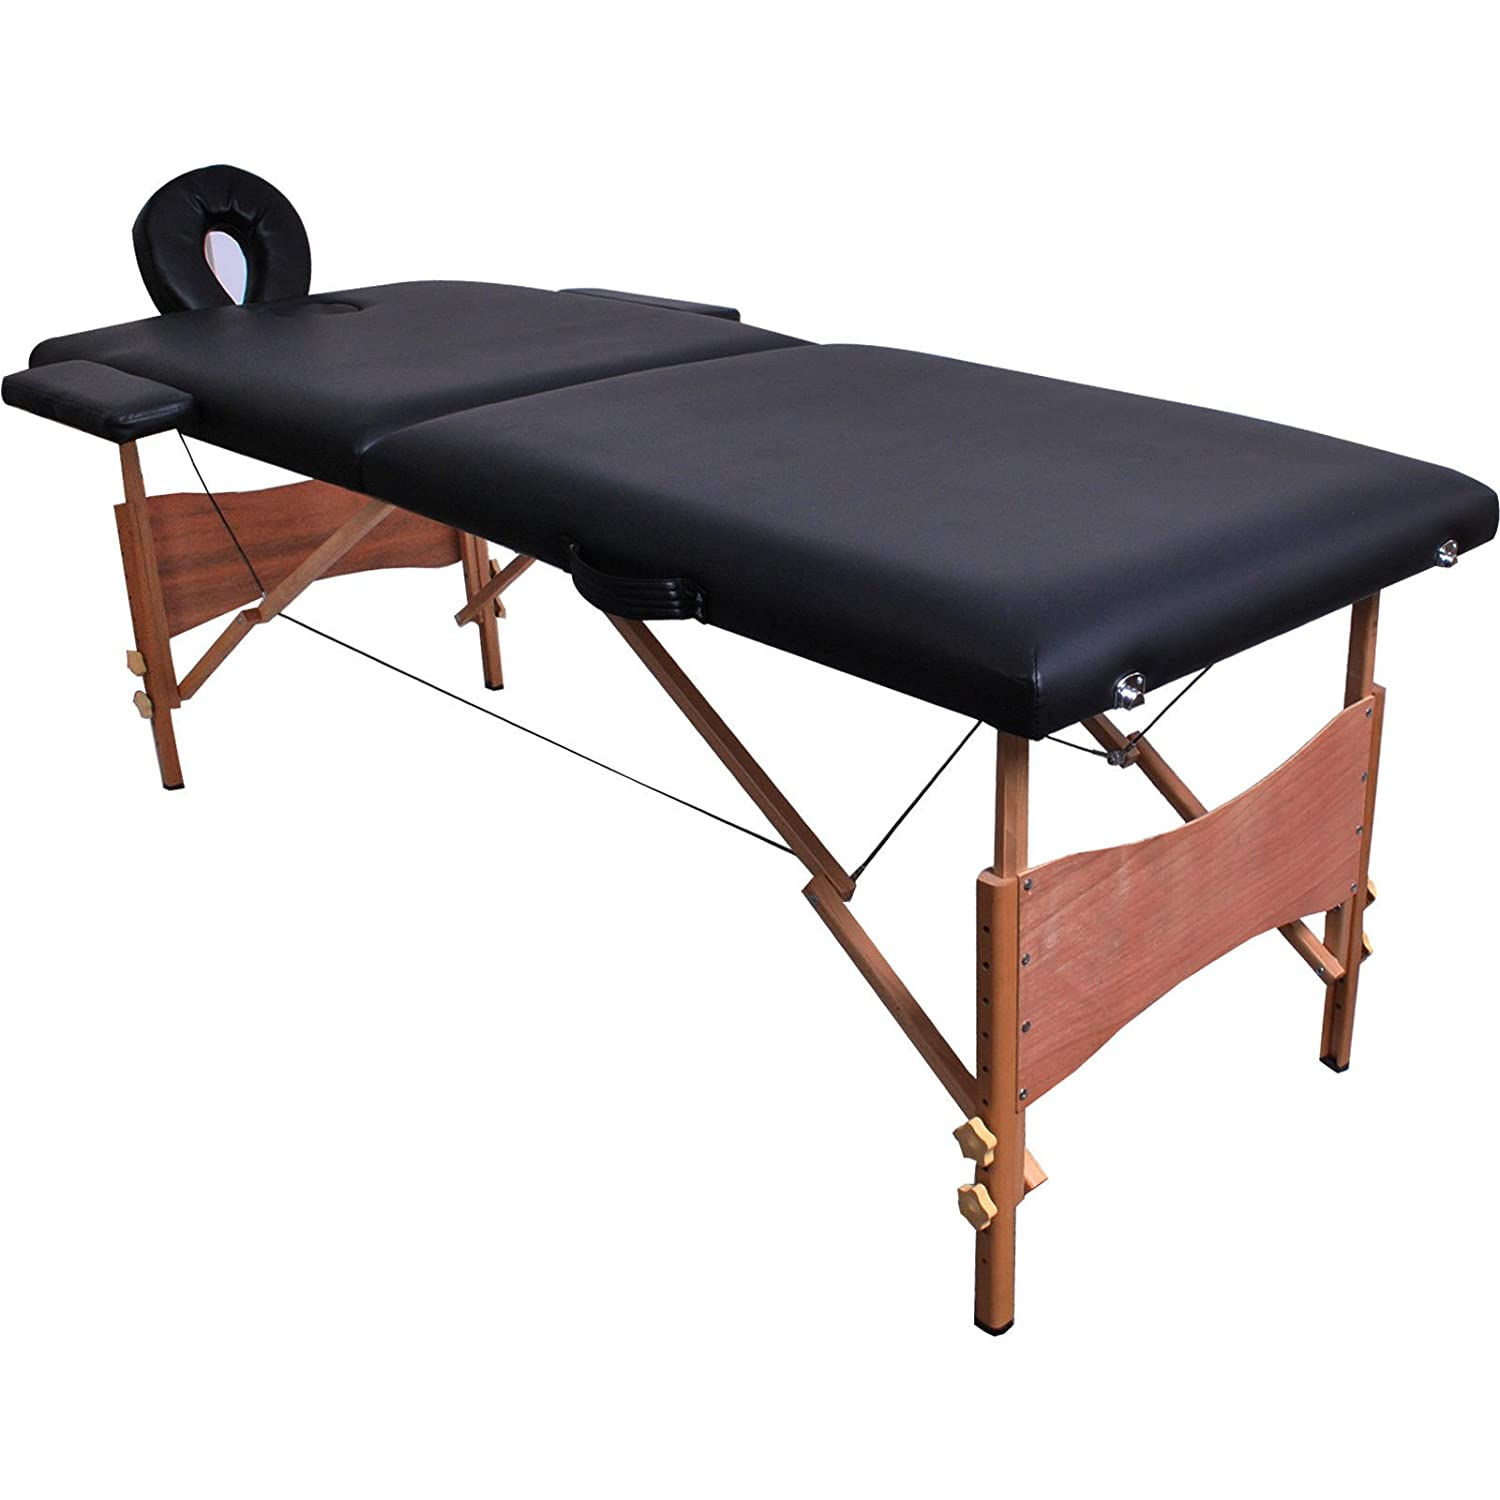 """Amazon New 84""""l Portable Massage Table Facial SPA Bed Tattoo"""